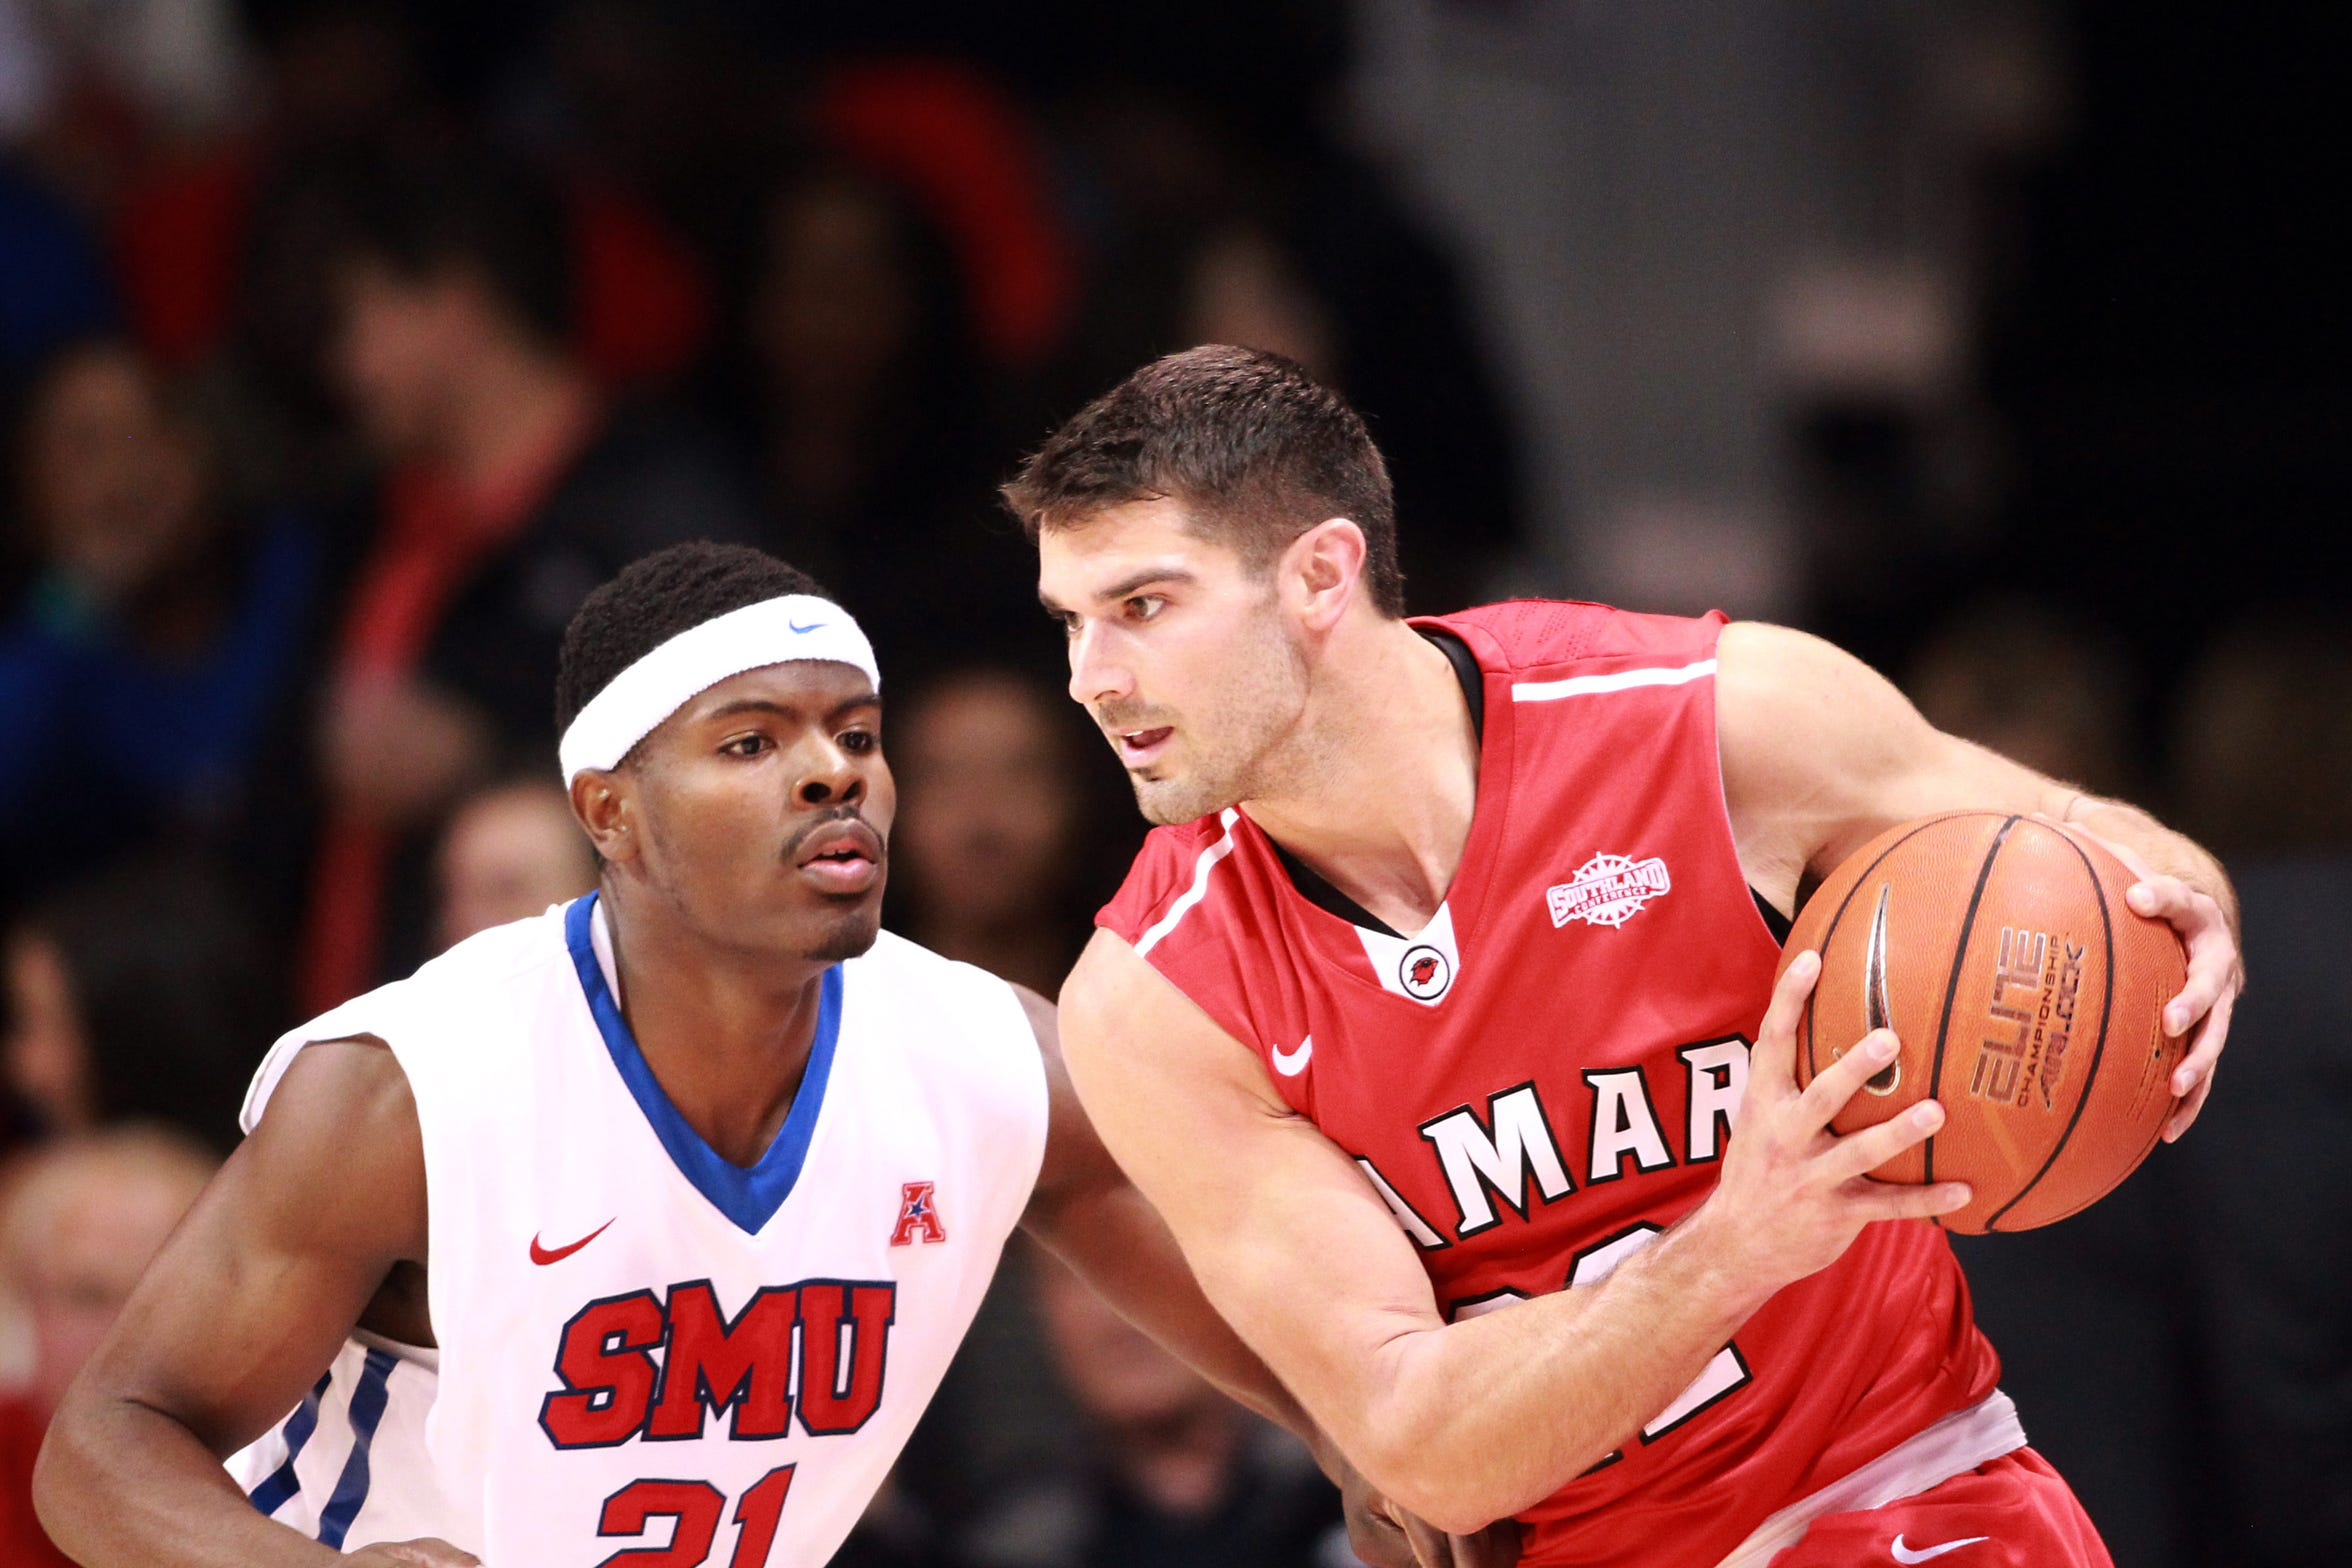 Lamar's Preston Mattingly looks to pass to a teammate as he is defended by a SMU player at a game in Dallas on Nov. 14, 2014.